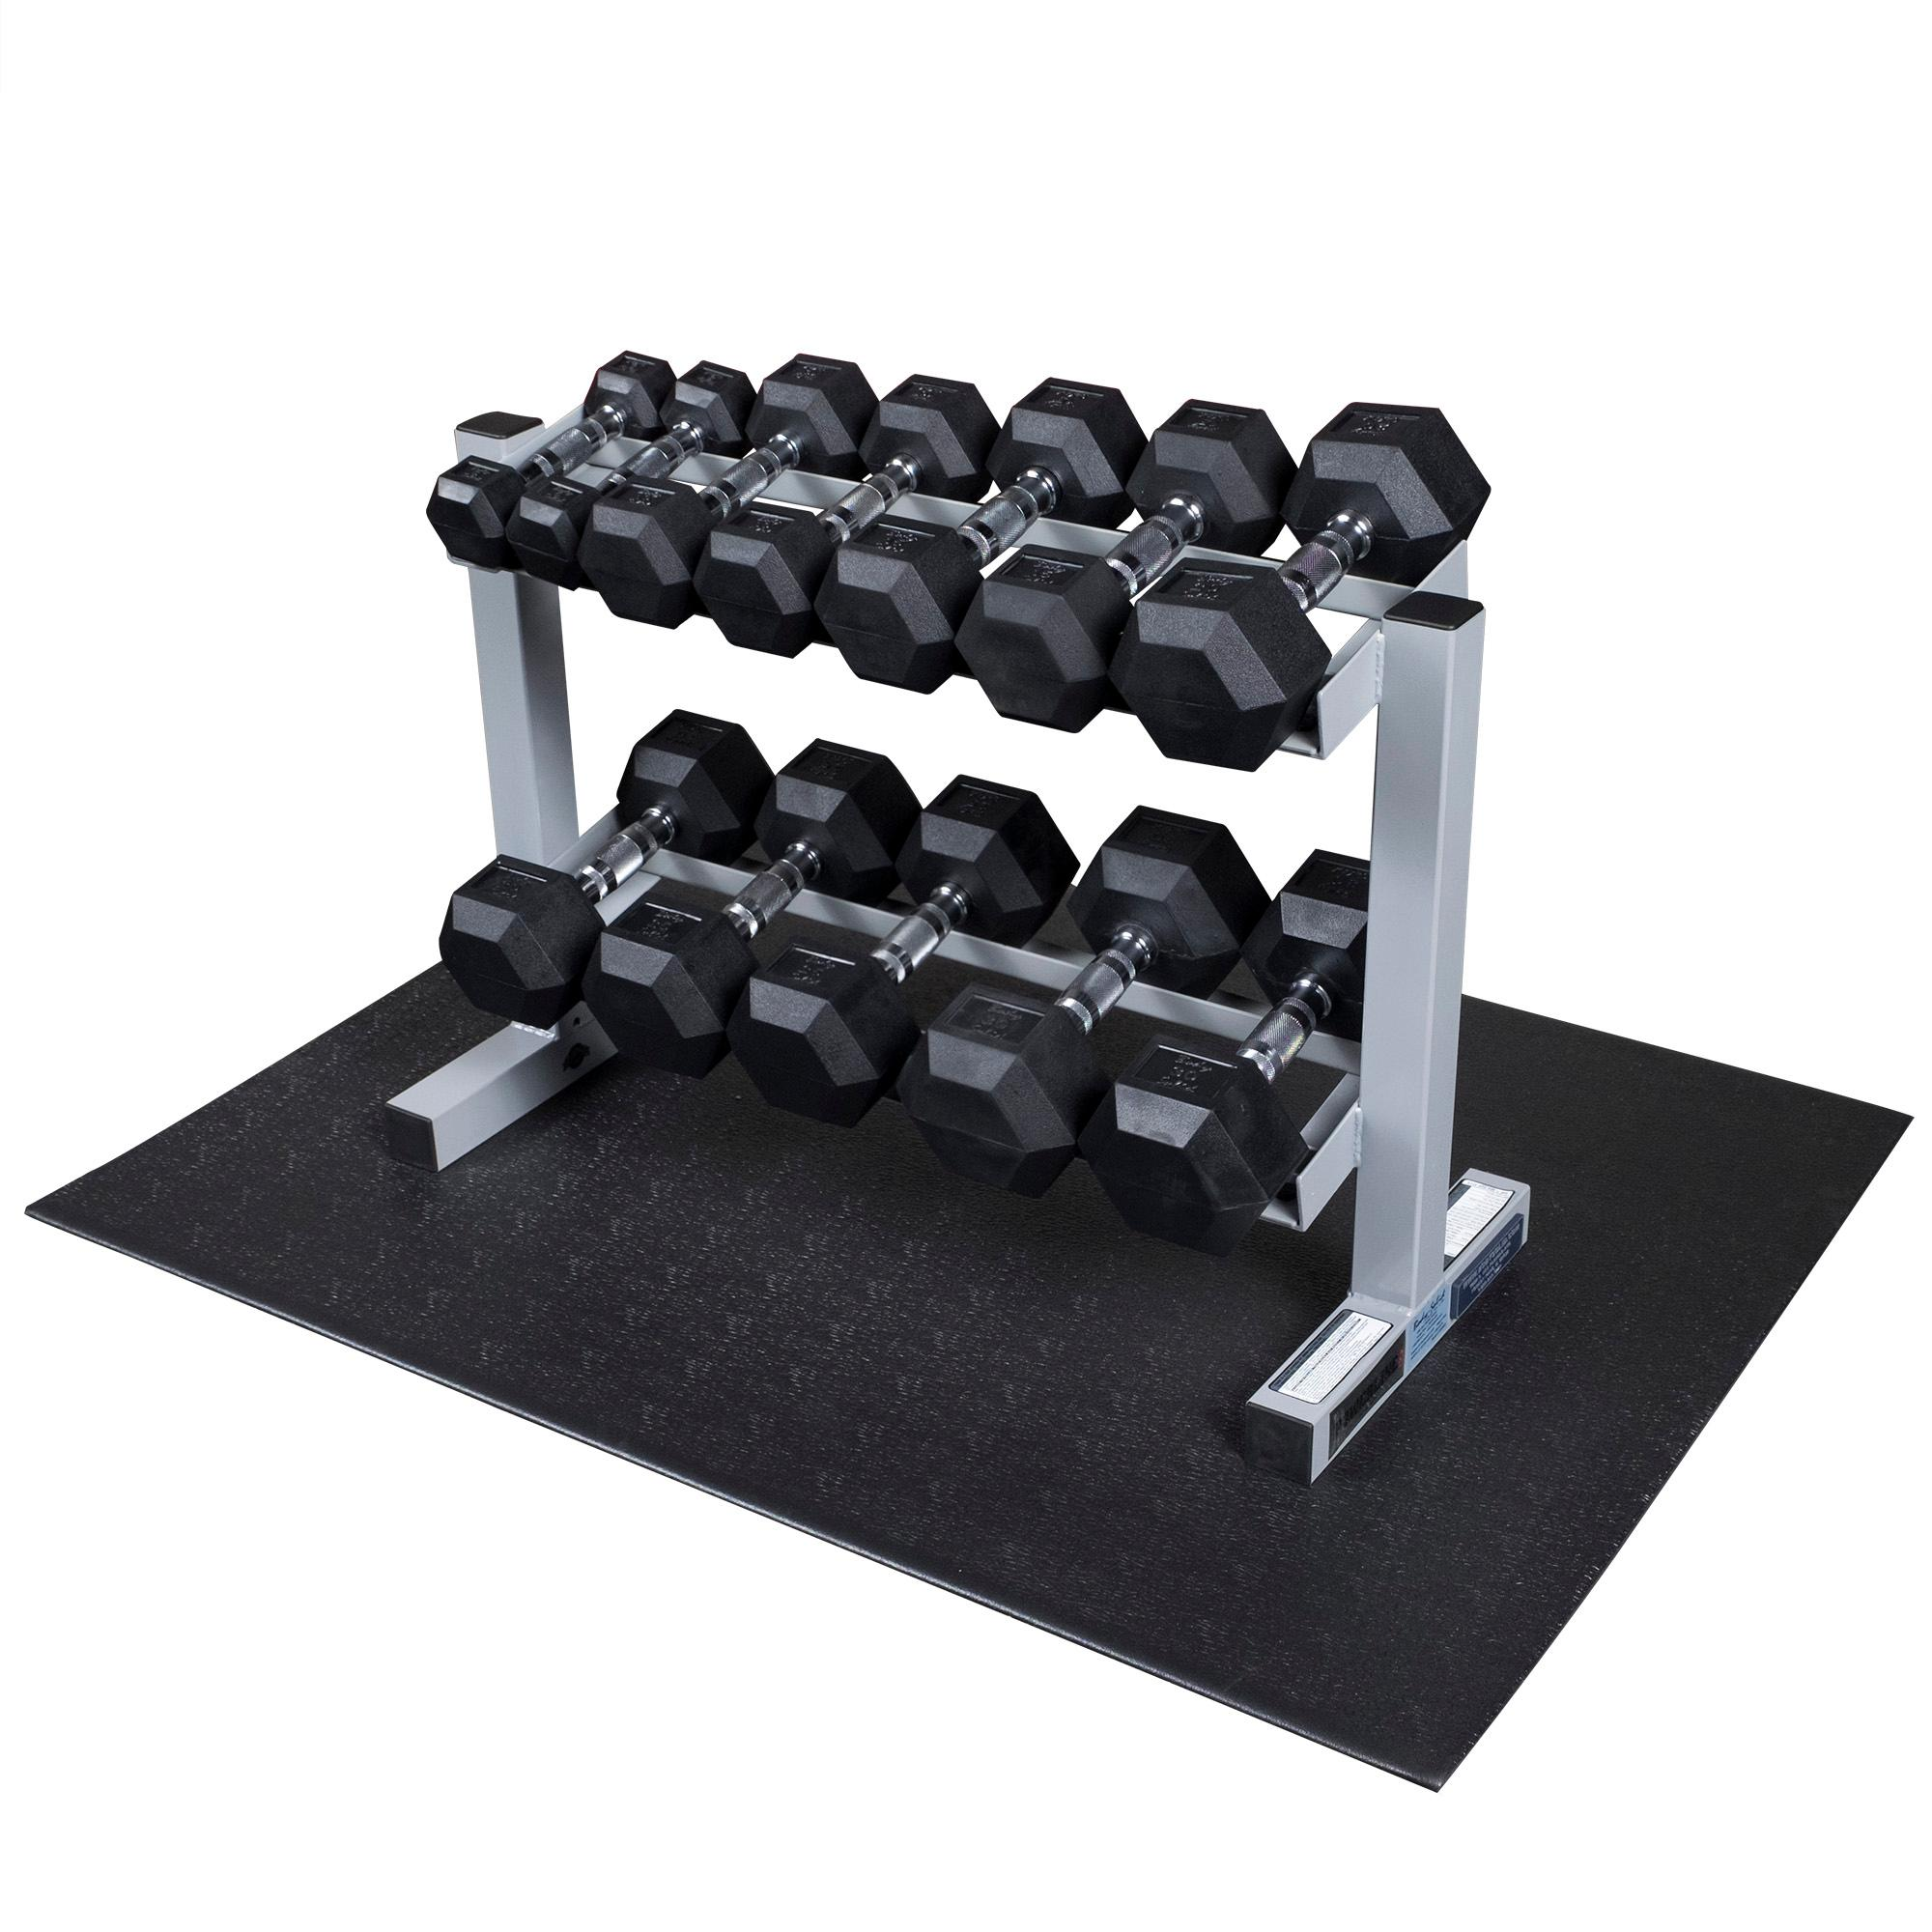 Amazon Com Powerline Pdr282x 32 Inch 2 Tier Dumbbell